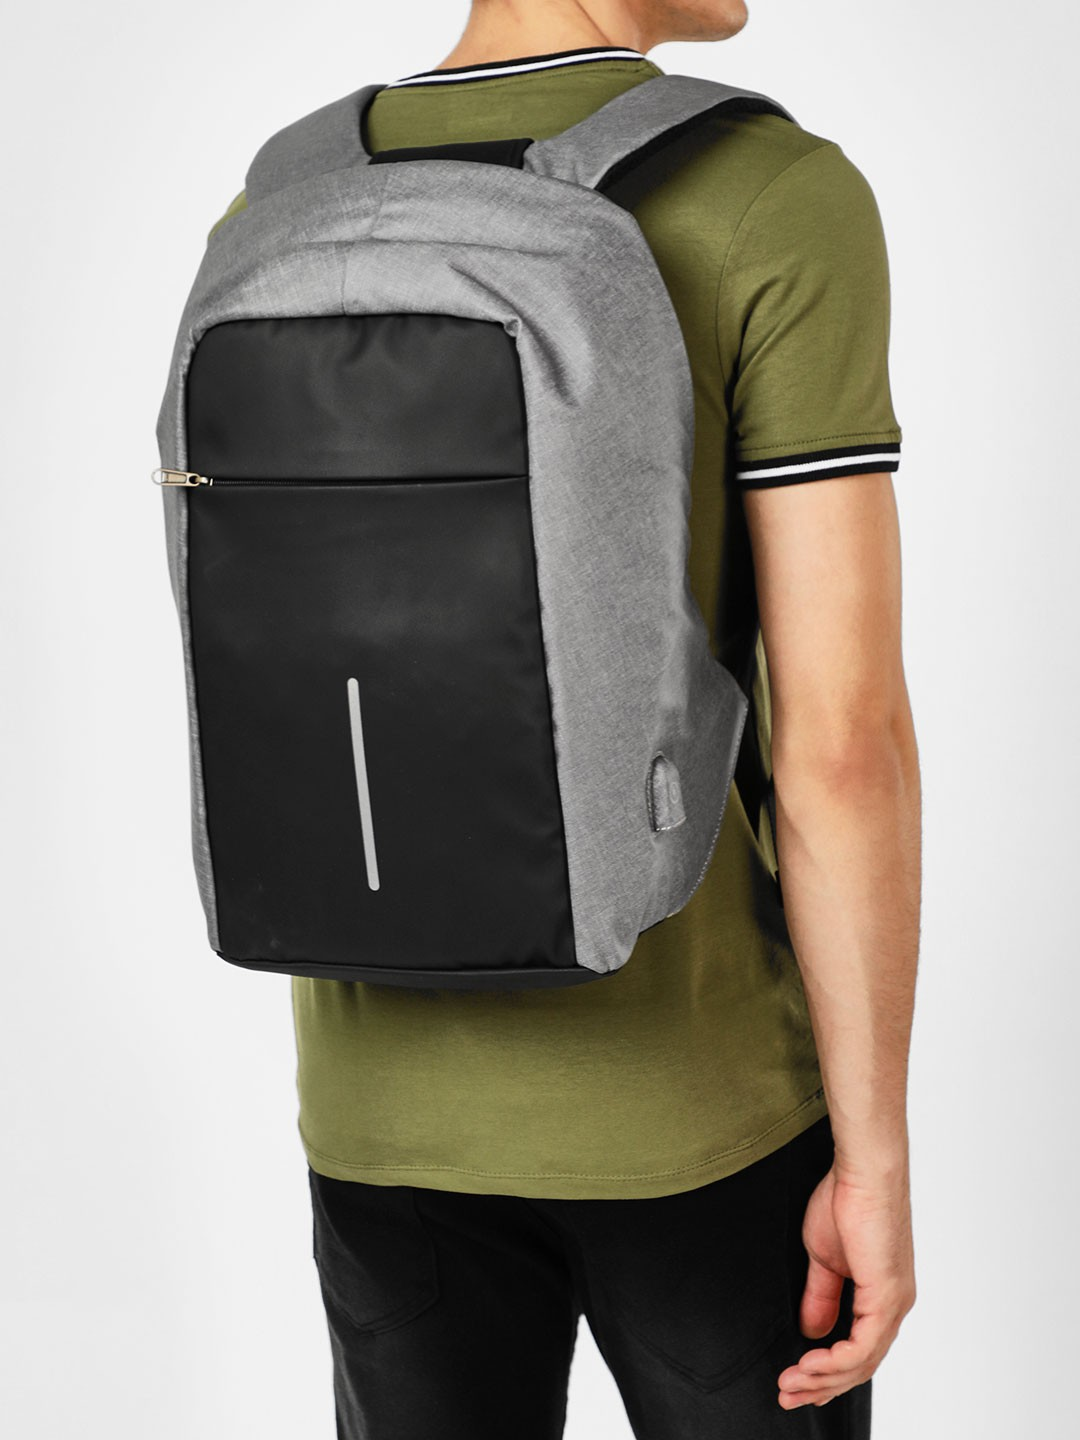 KAKA Multi USB Anti-Theft Backpack 1